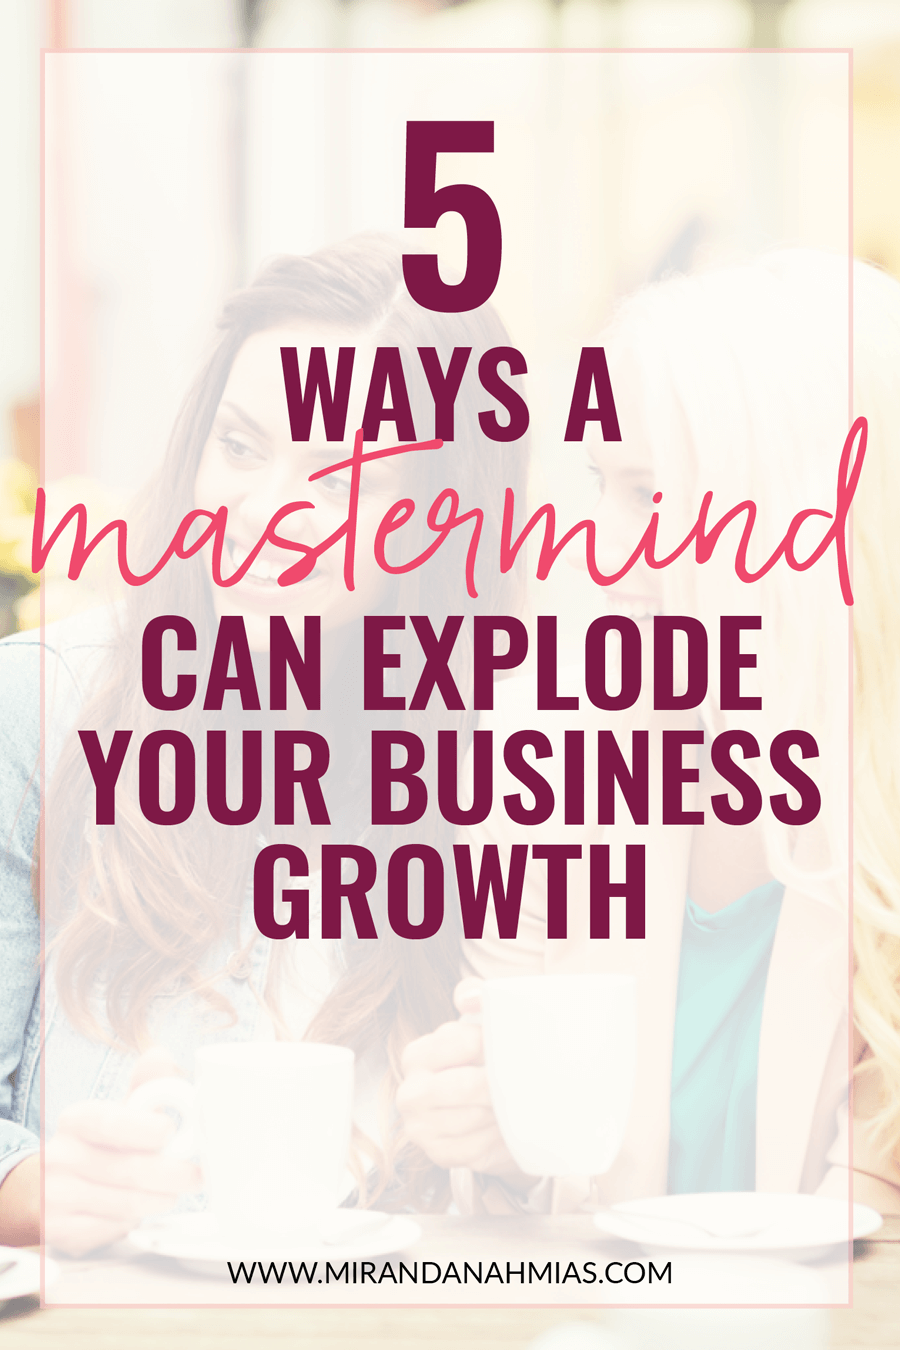 Looking to scale up your online business? Joining a mastermind is one of the best and easiest ways to explode your growth! | Miranda Nahmias & Co. Score Clients and Explode Your Business with Systematic Marketing